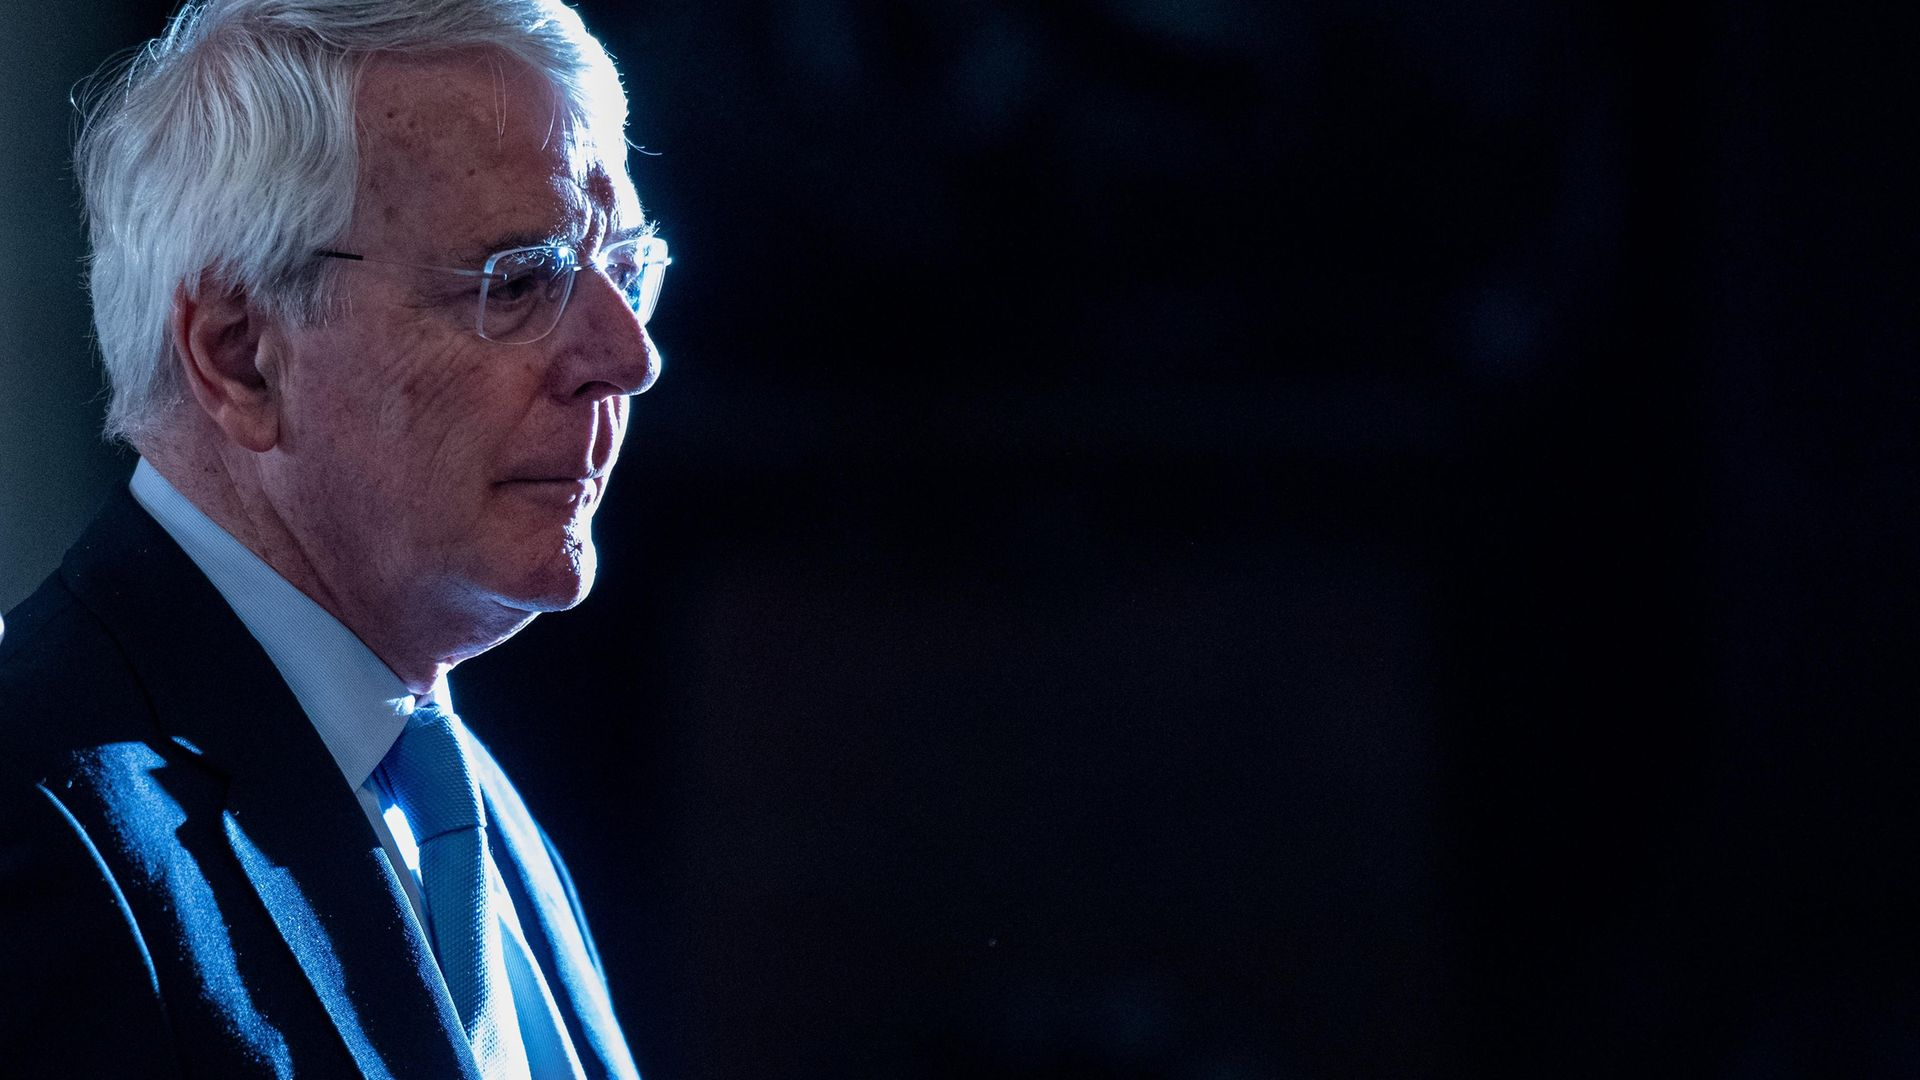 Former Prime Minister John Major. (Photo by Chris J Ratcliffe - WPA Pool / Getty Images) - Credit: Getty Images